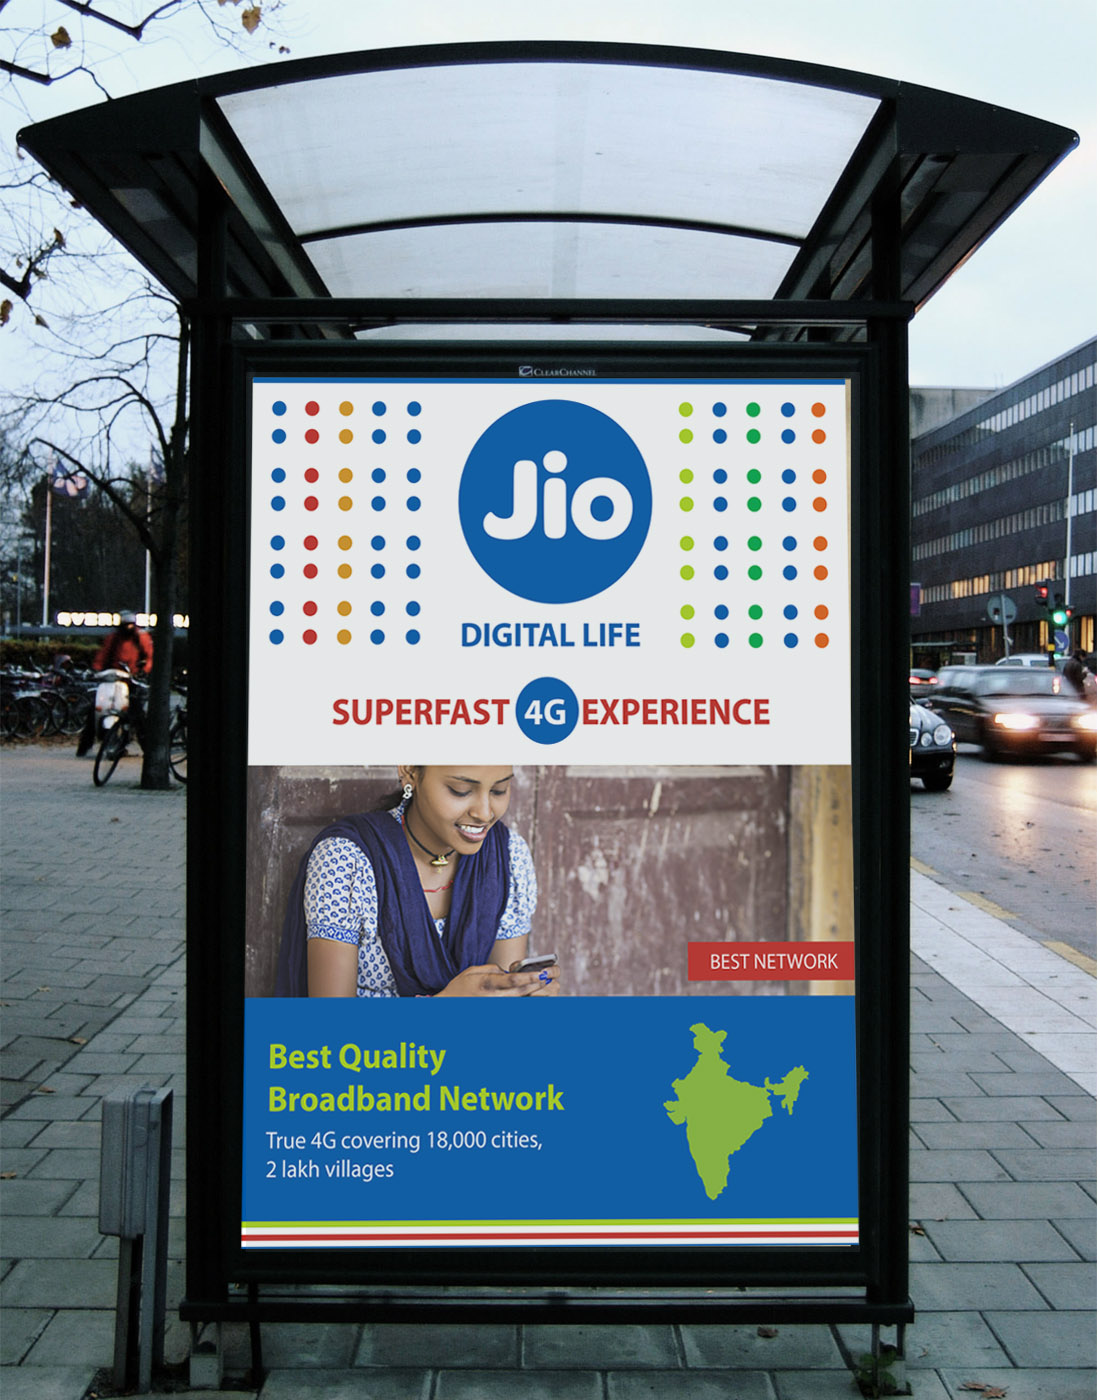 JIO-GRAPHIC